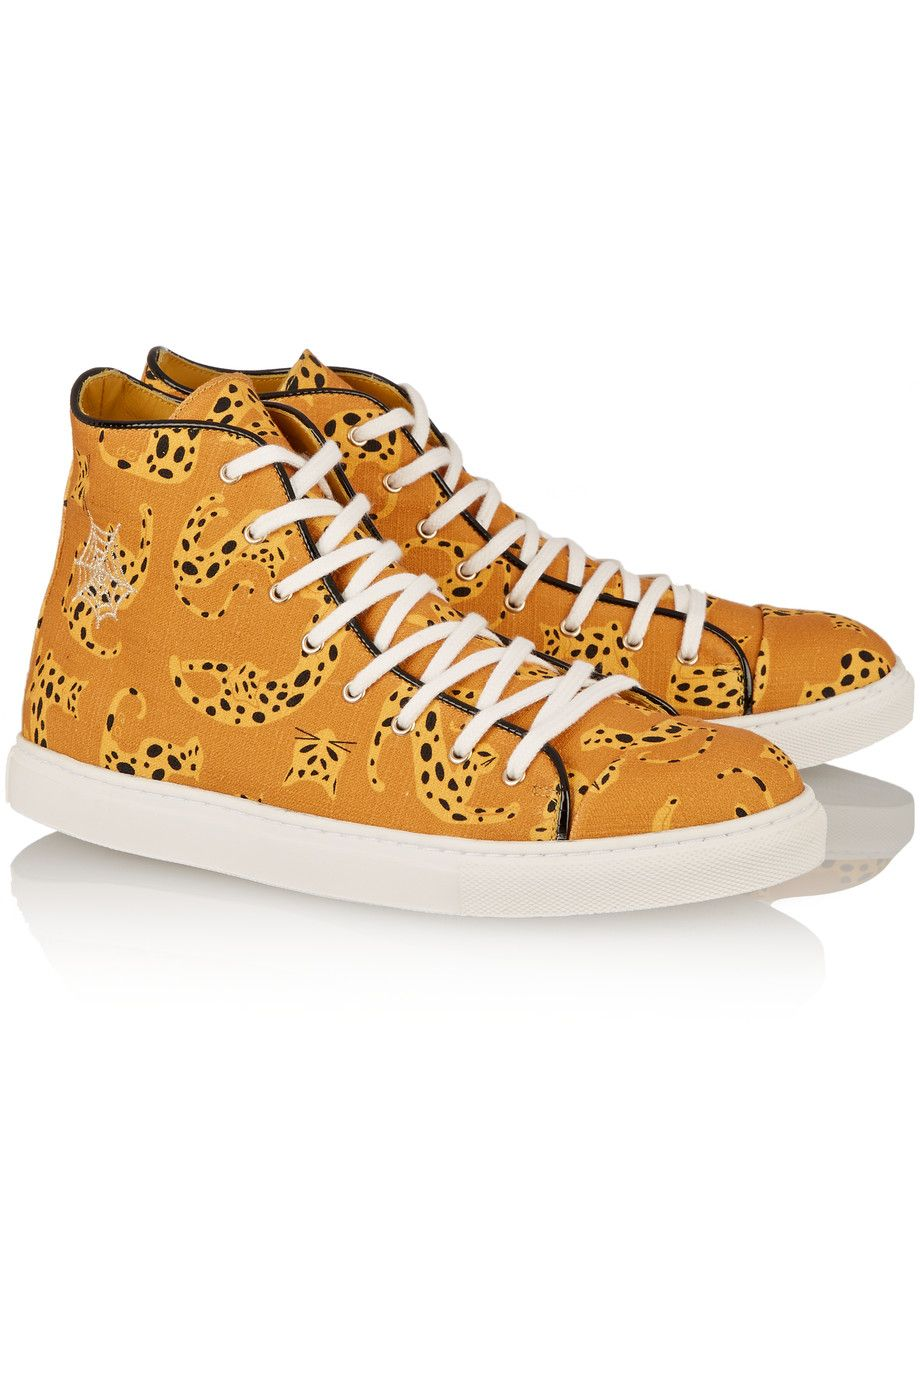 Charlotte OlympiaPrinted canvas high-top sneakers